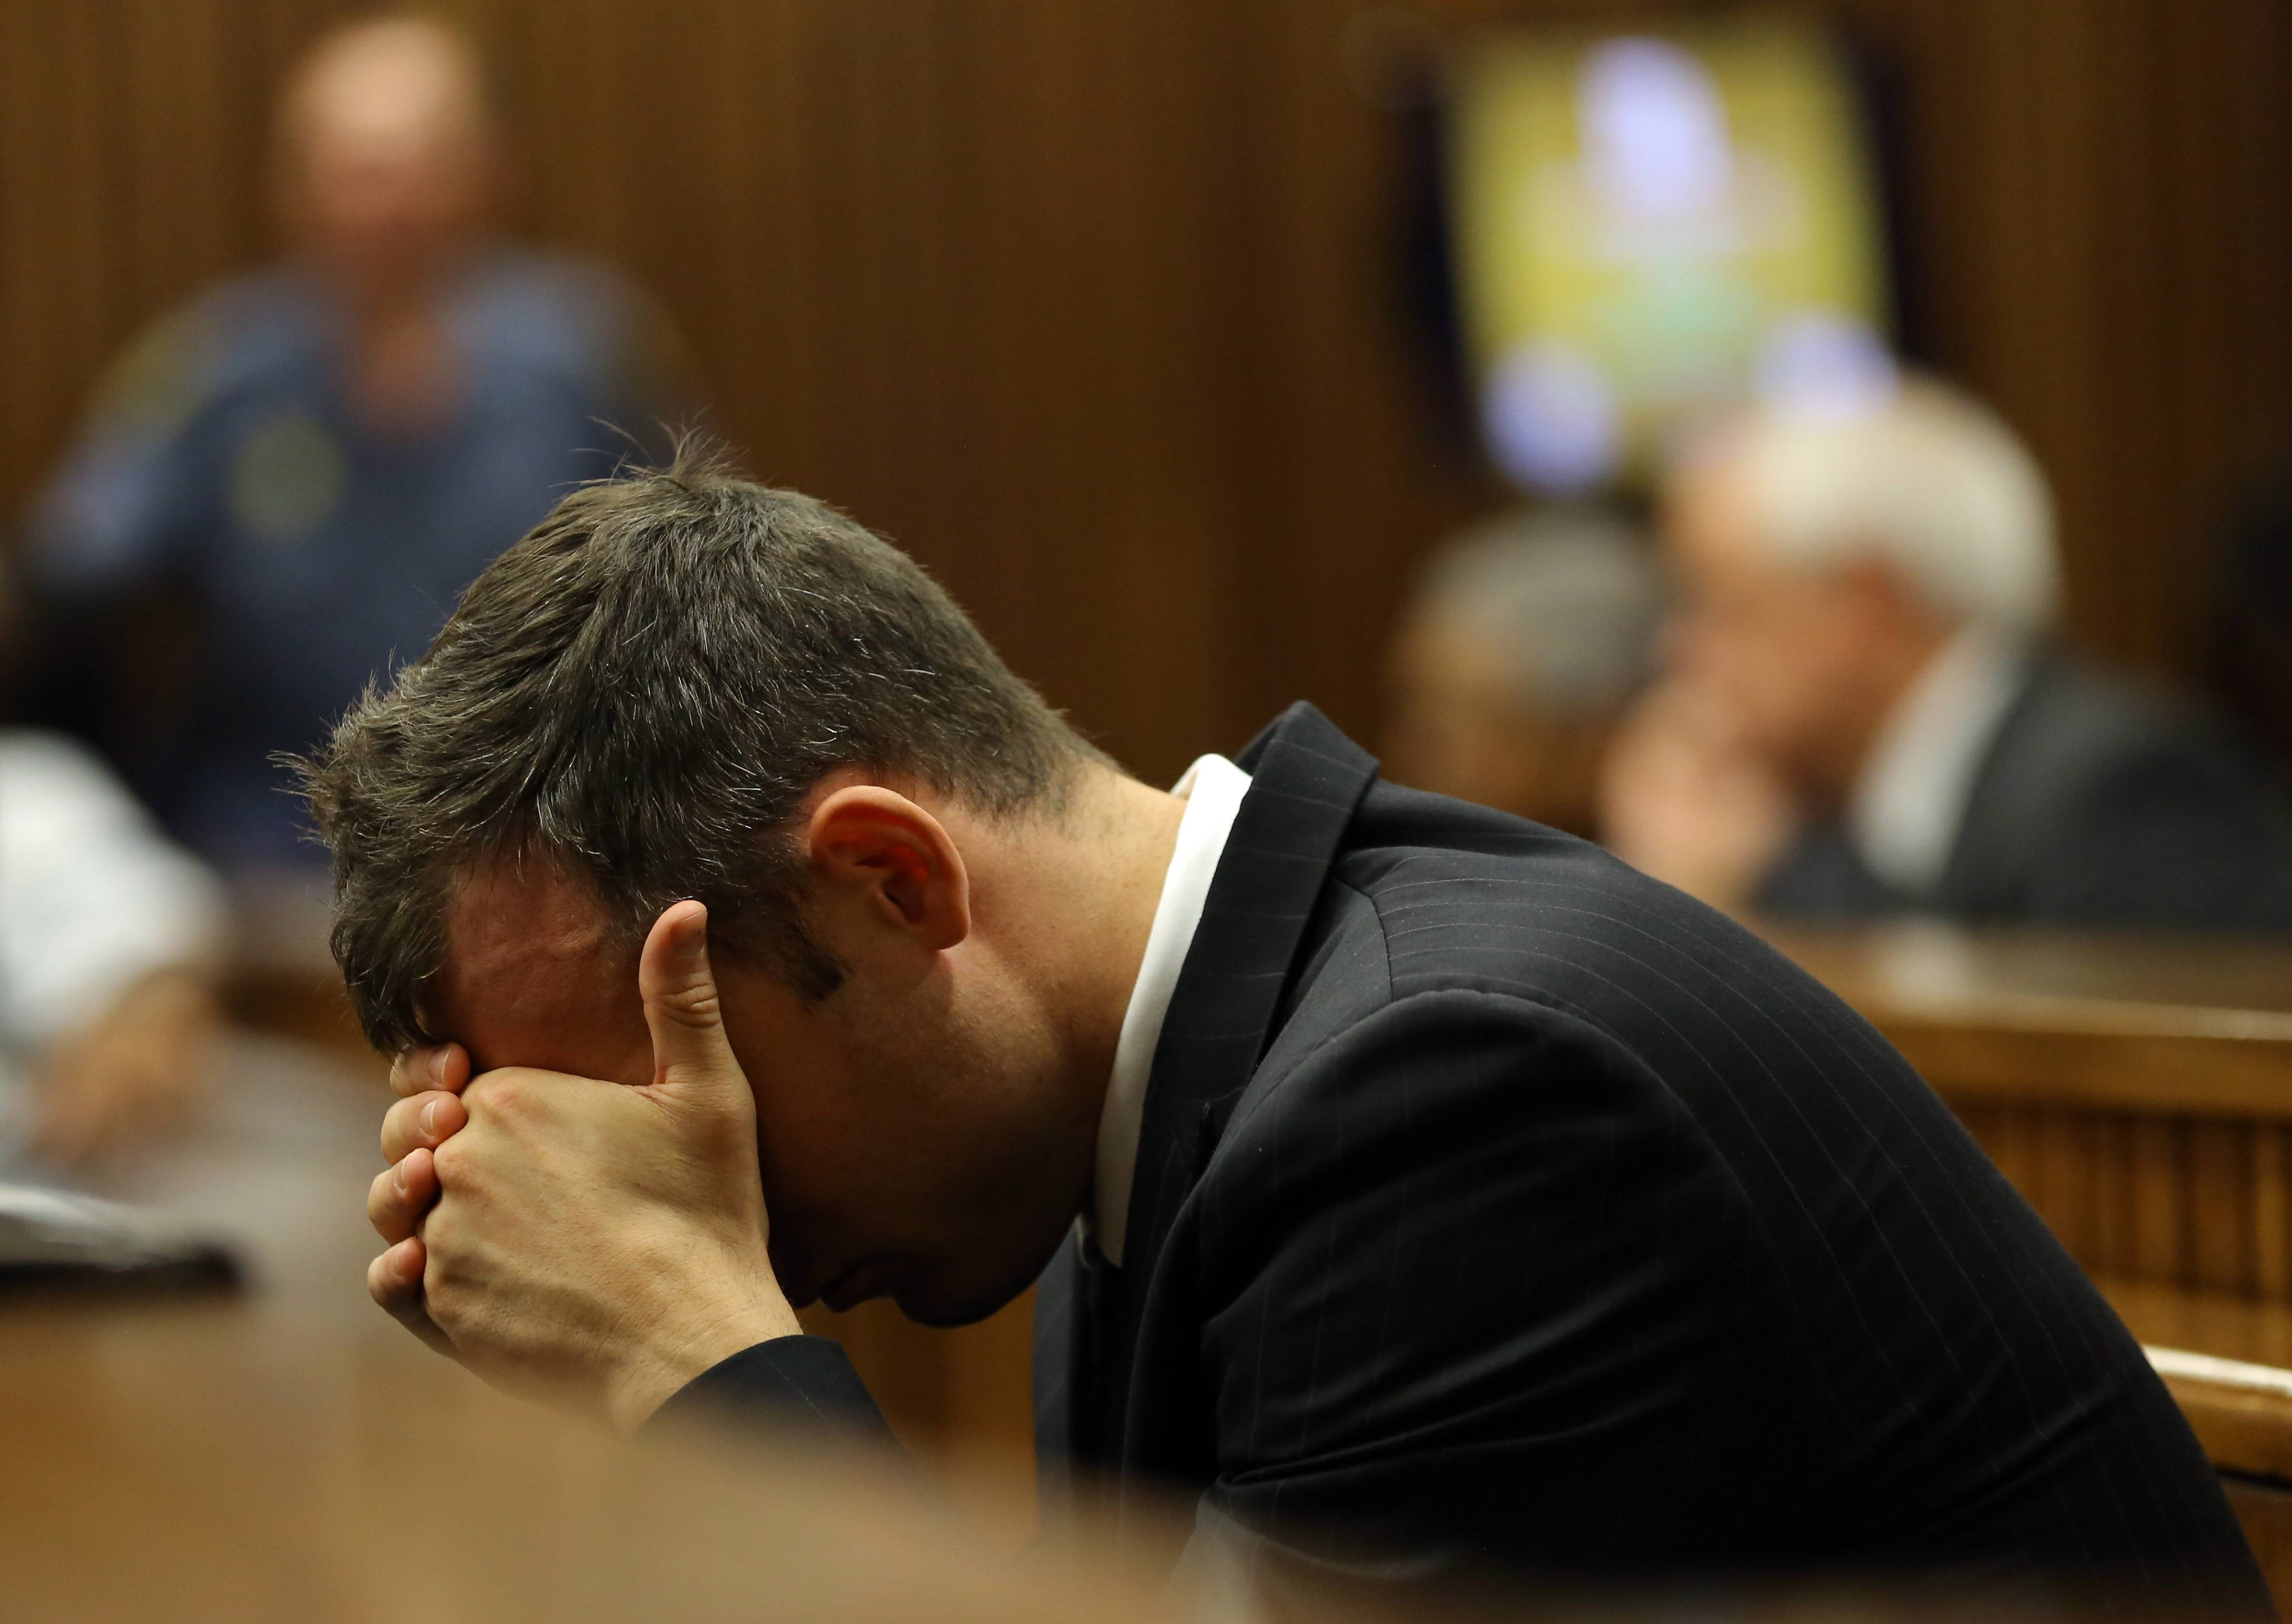 Oscar Pistorius places his head in his hands as he listens to the cross examination during his trial in court in Pretoria, South Africa, Thursday. He is charged with the shooting death of his girlfriend Reeva Steenkamp on Valentine's Day in 2013.